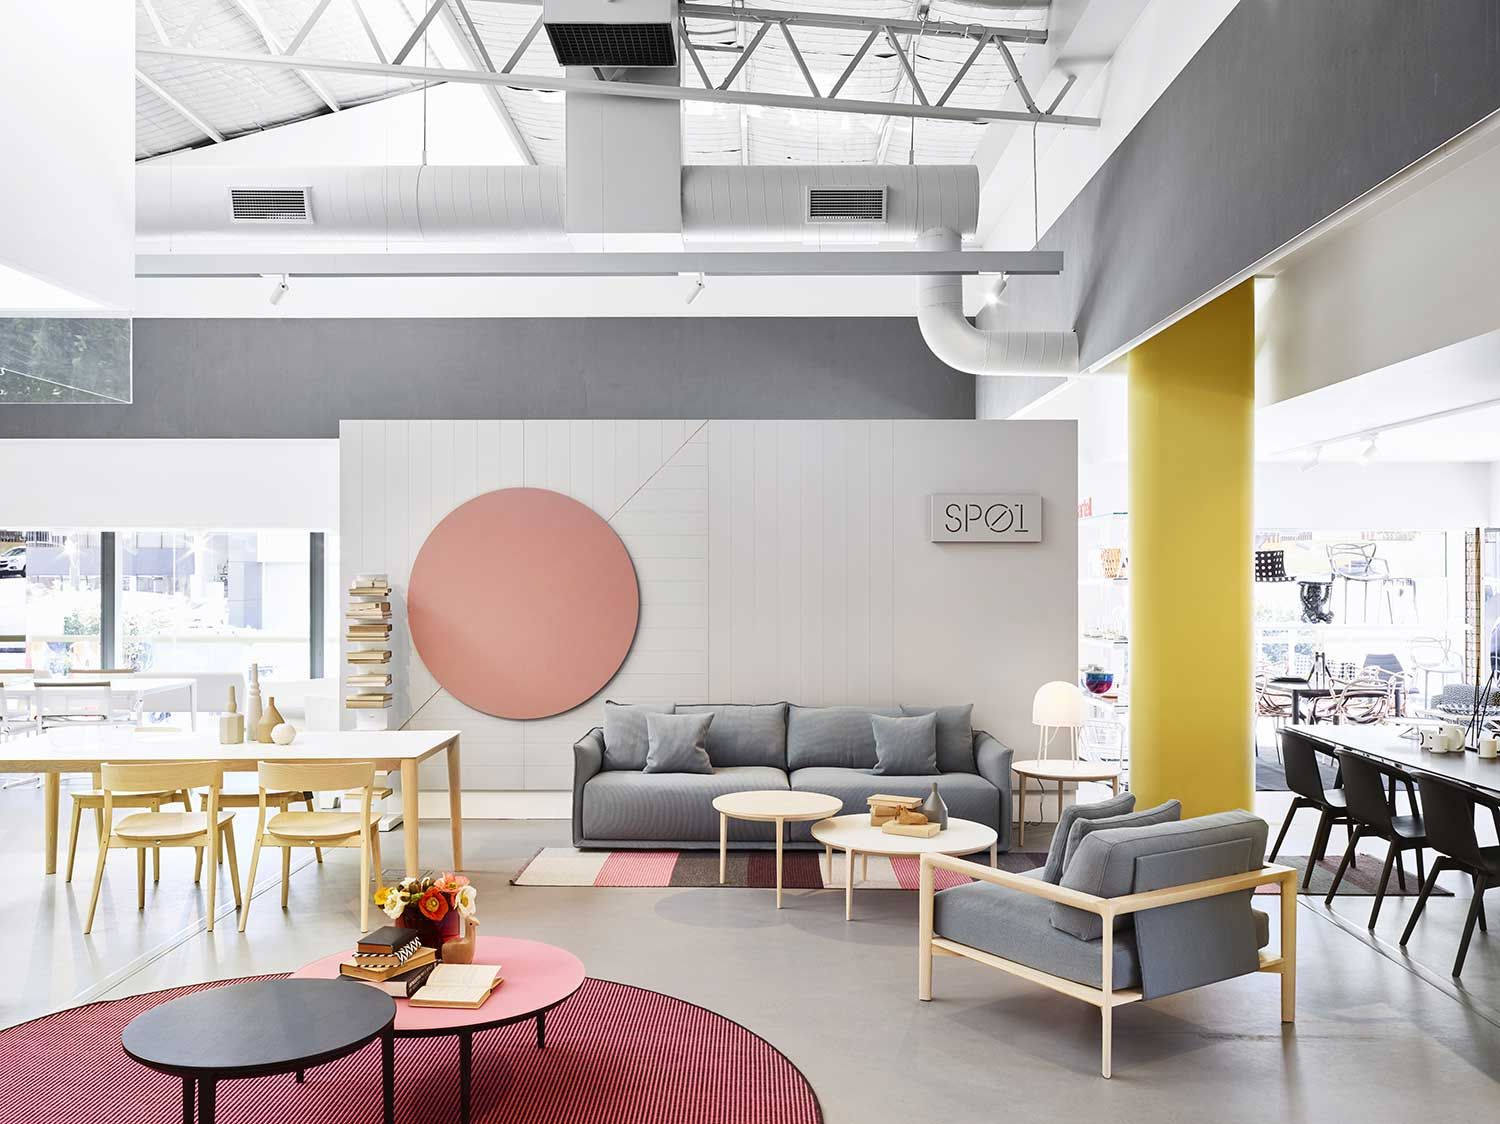 Lounge Clearance Brisbane Space Furniture S New Showroom By Designoffice New Work